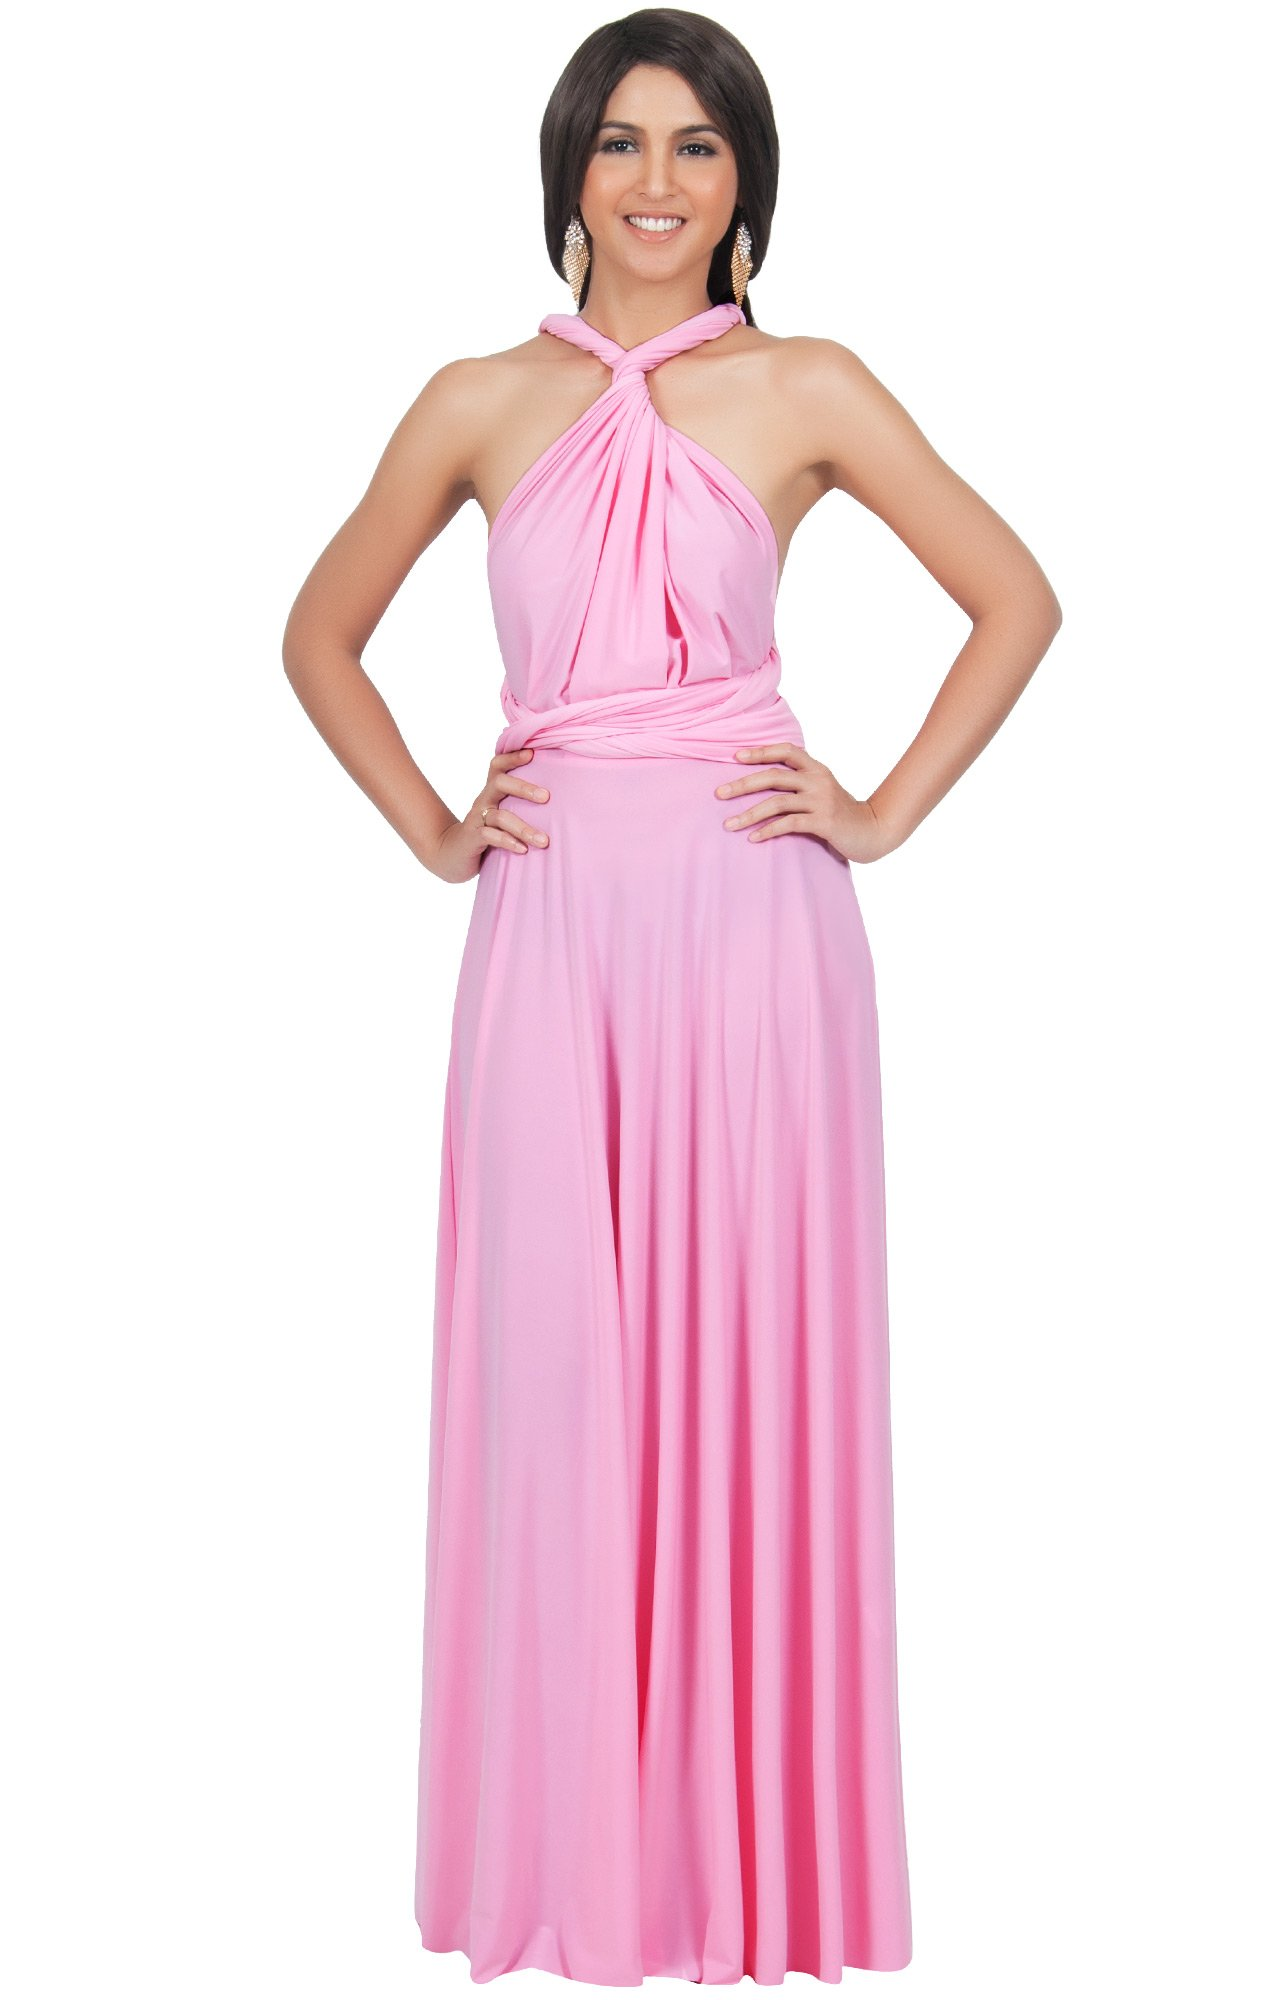 KOH KOH Womens Long Bridesmaid Multi-Way Wedding Convertible Wrap Infinity Cocktail Sexy Summer Party Formal Prom Transformer Gown Gowns Maxi Dress Dresses, Hot Fuschia Pink M 8-10